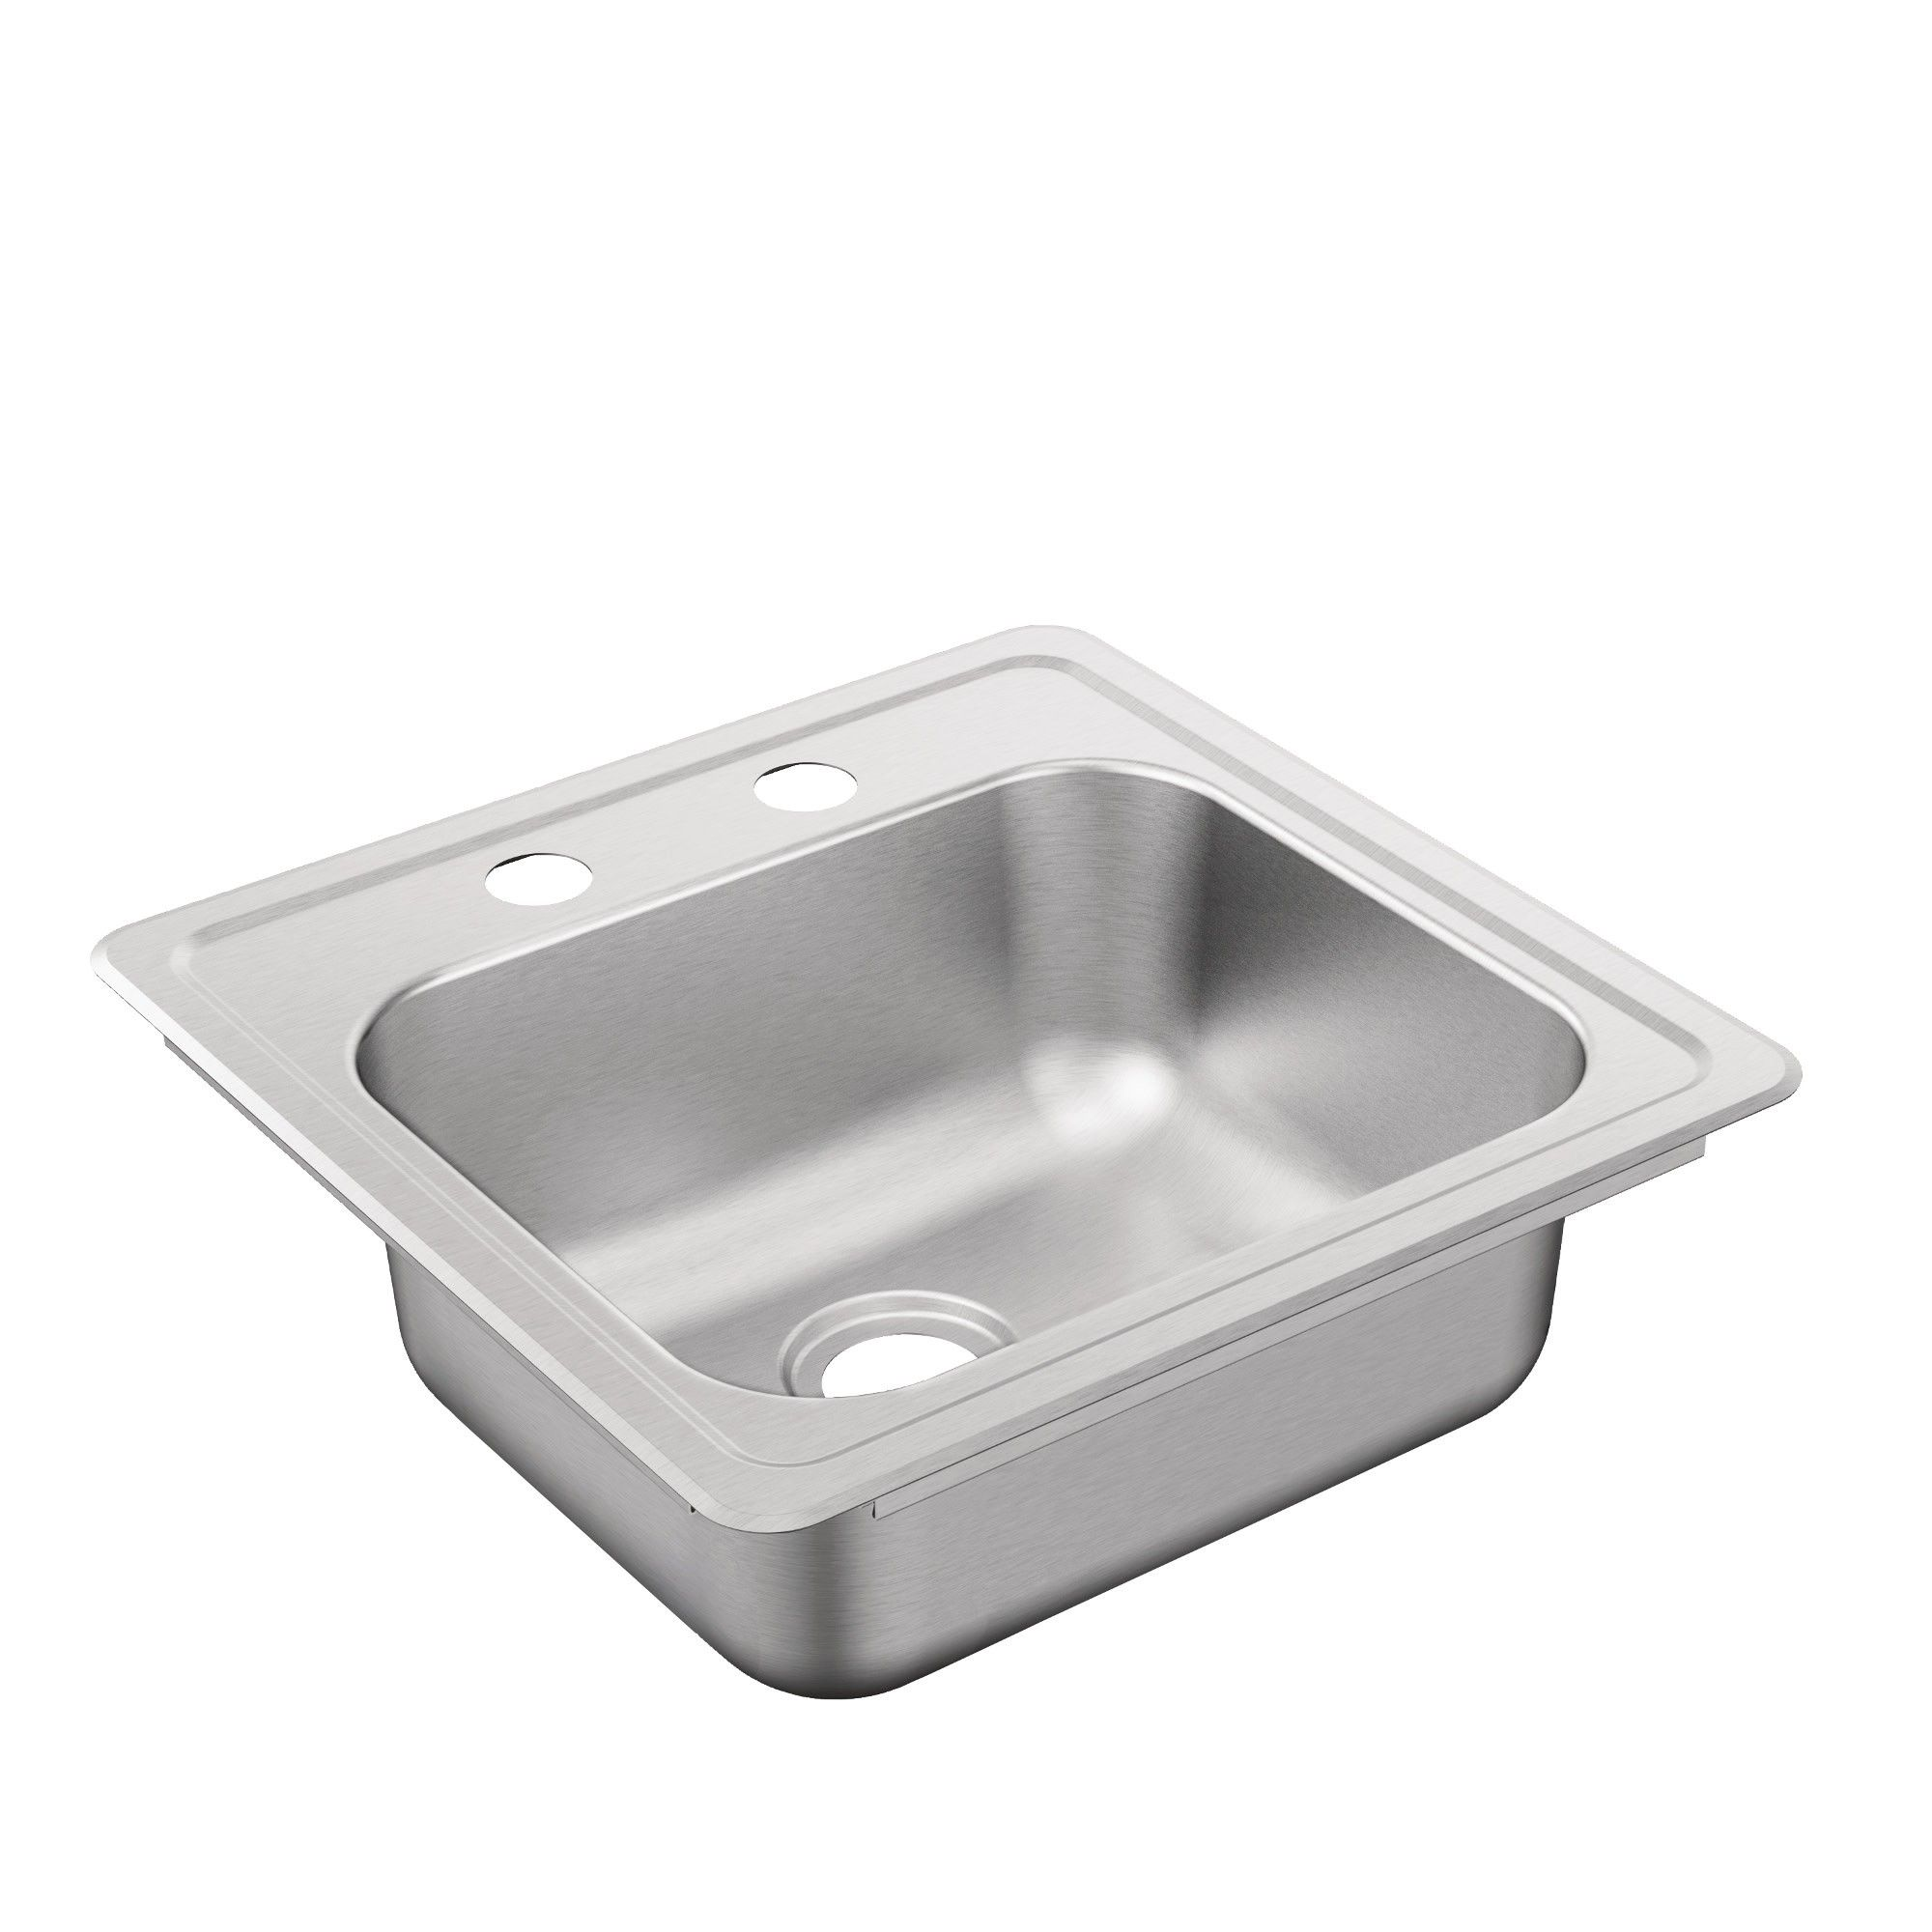 Moen G2245622b 2200 Series 15 Drop In Single Basin Stainless Steel